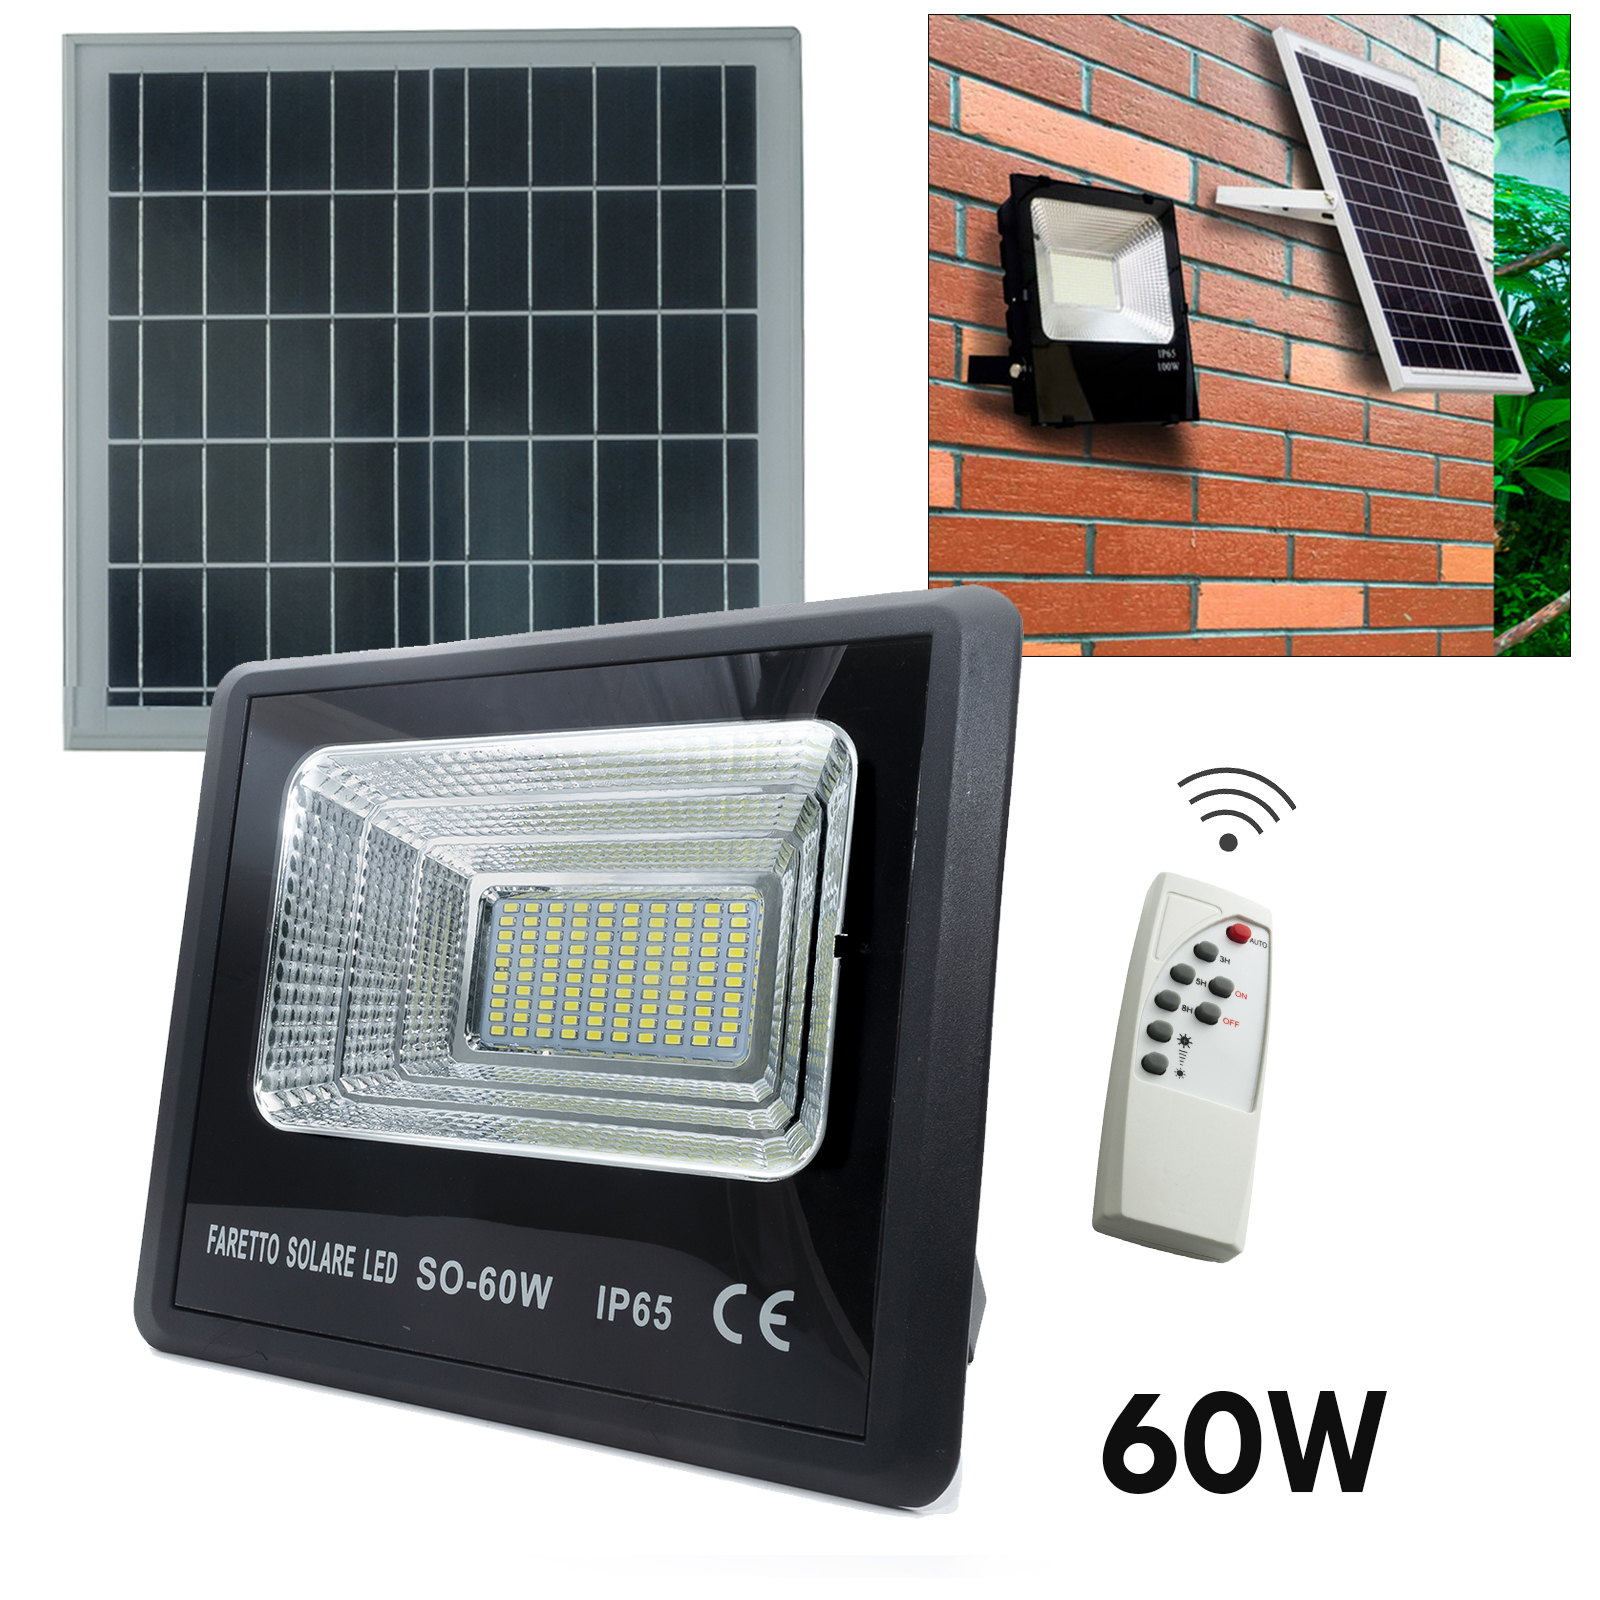 LED spotlight 60W light dependent charging solar panel garden light 6000K IP65